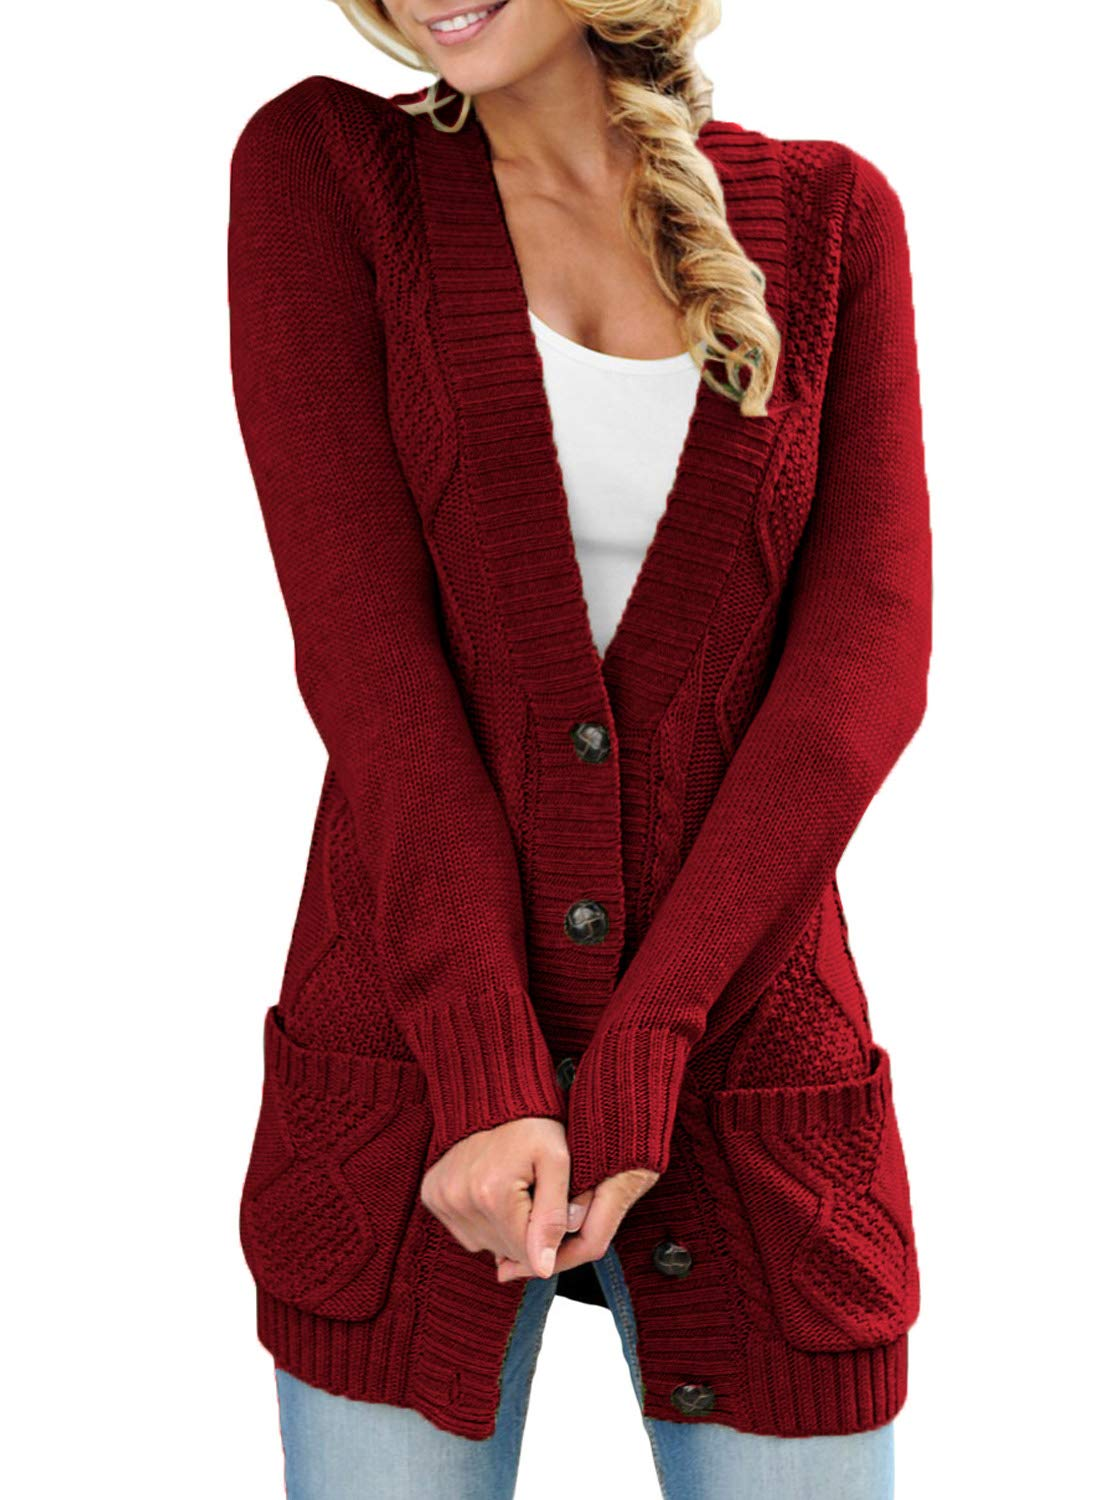 LOSRLY Women Open Front Cabel Knit Cardigan Button Down Long Sleeve Sweater Coat Outwear with Pockets-Wine XXL 18 20